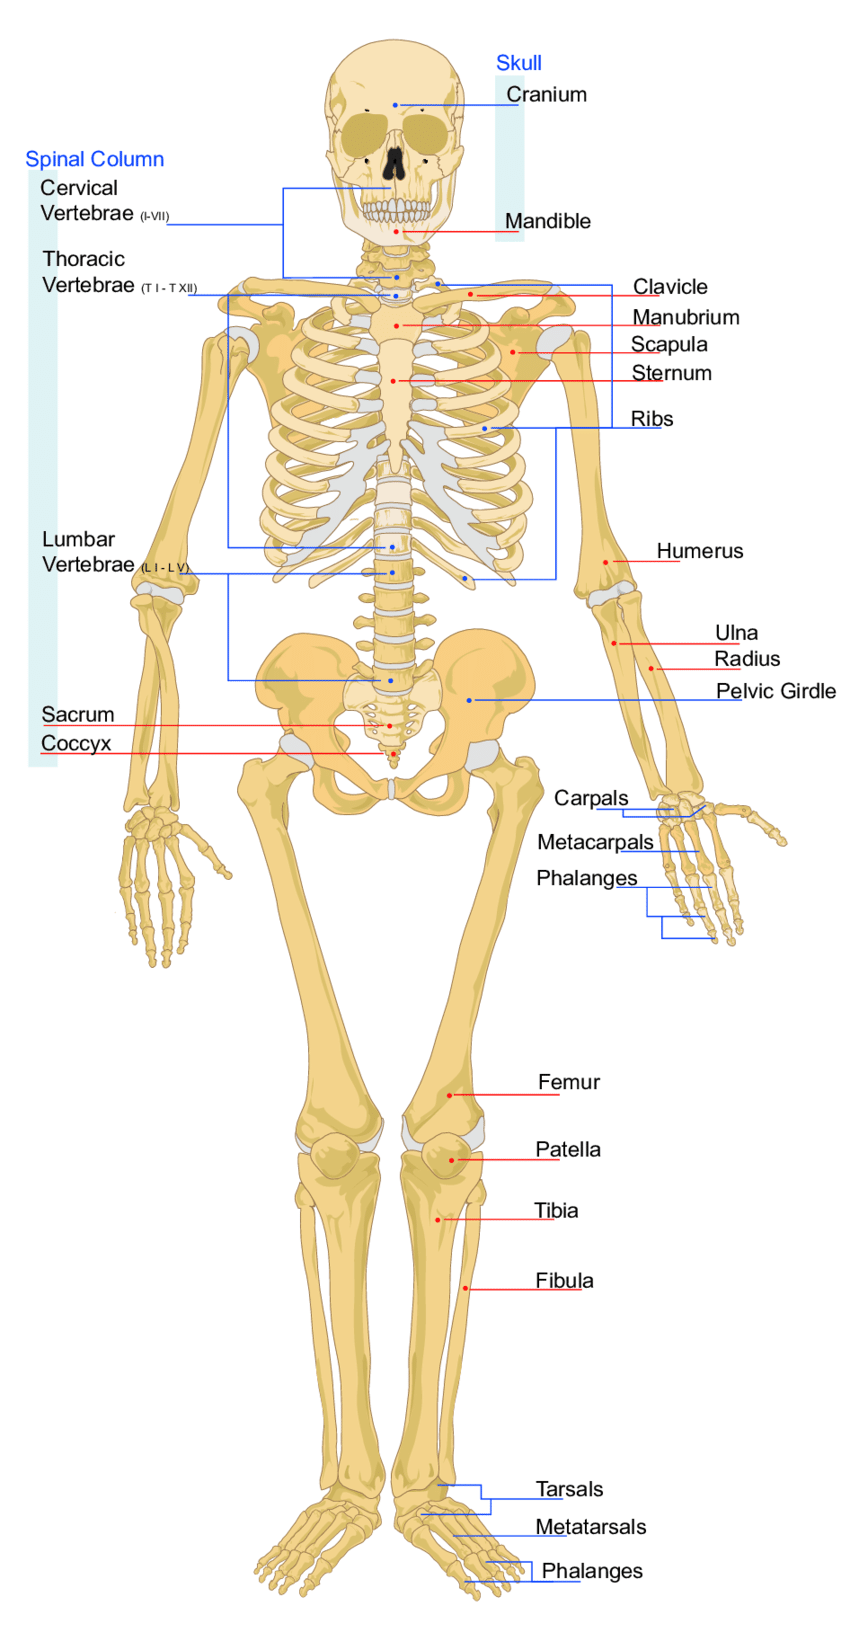 hight resolution of figure a 3 diagram of major human body bones source wikimedia commons